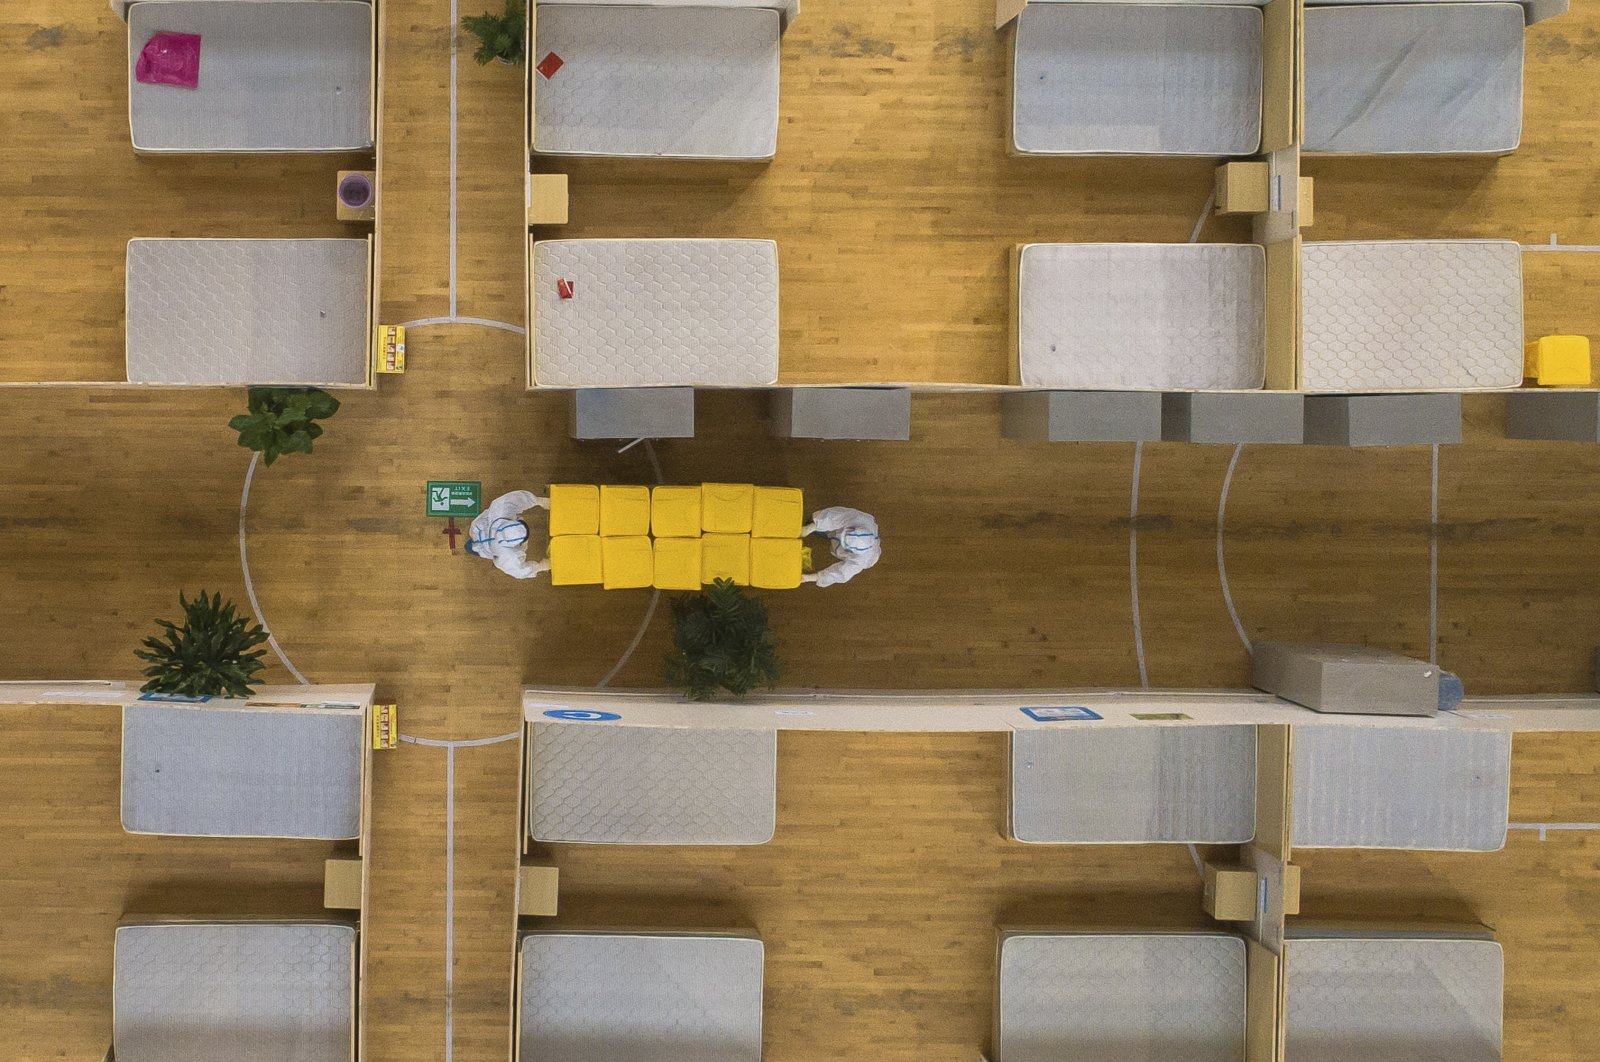 In this March 8, 2020, photo released by Xinhua News Agency, an aerial view shows staff members clean up an empty makeshift hospital in Wuhan, central China's Hubei Province. (Xinhua via AP)